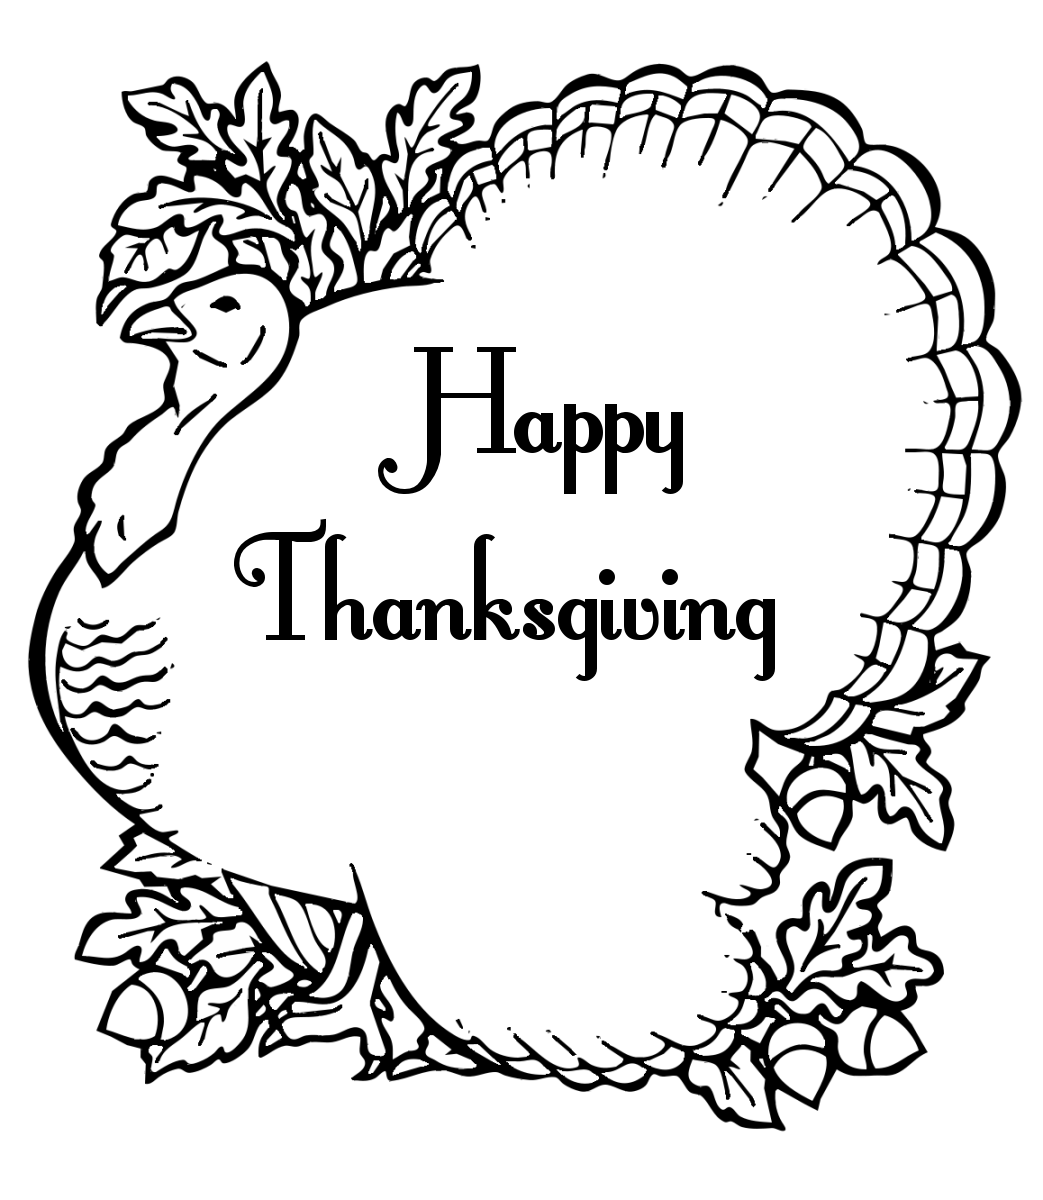 Thanksgiving Coloring Pages 3 Thanksgiving Coloring Pages 4